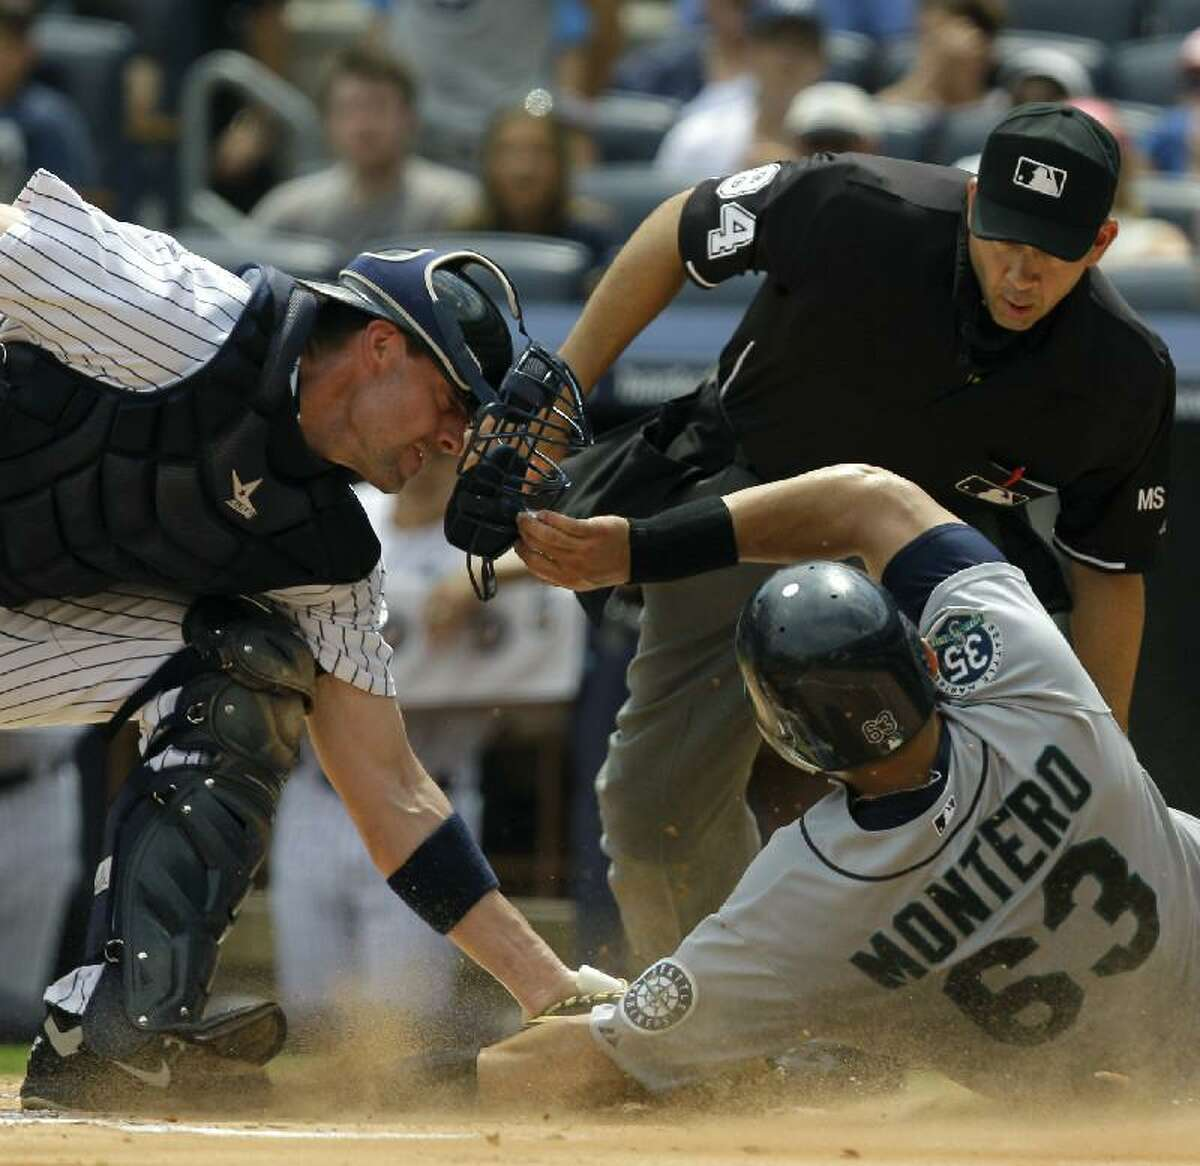 ASSOCIATED PRESS Home plate umpire Angel Campos, top right, watches as New York Yankees catcher Chris Stewart, left, tags out Seattle Mariners' Jesus Montero at the plate in the first inning of Sunday's game at Yankee Stadium in New York.